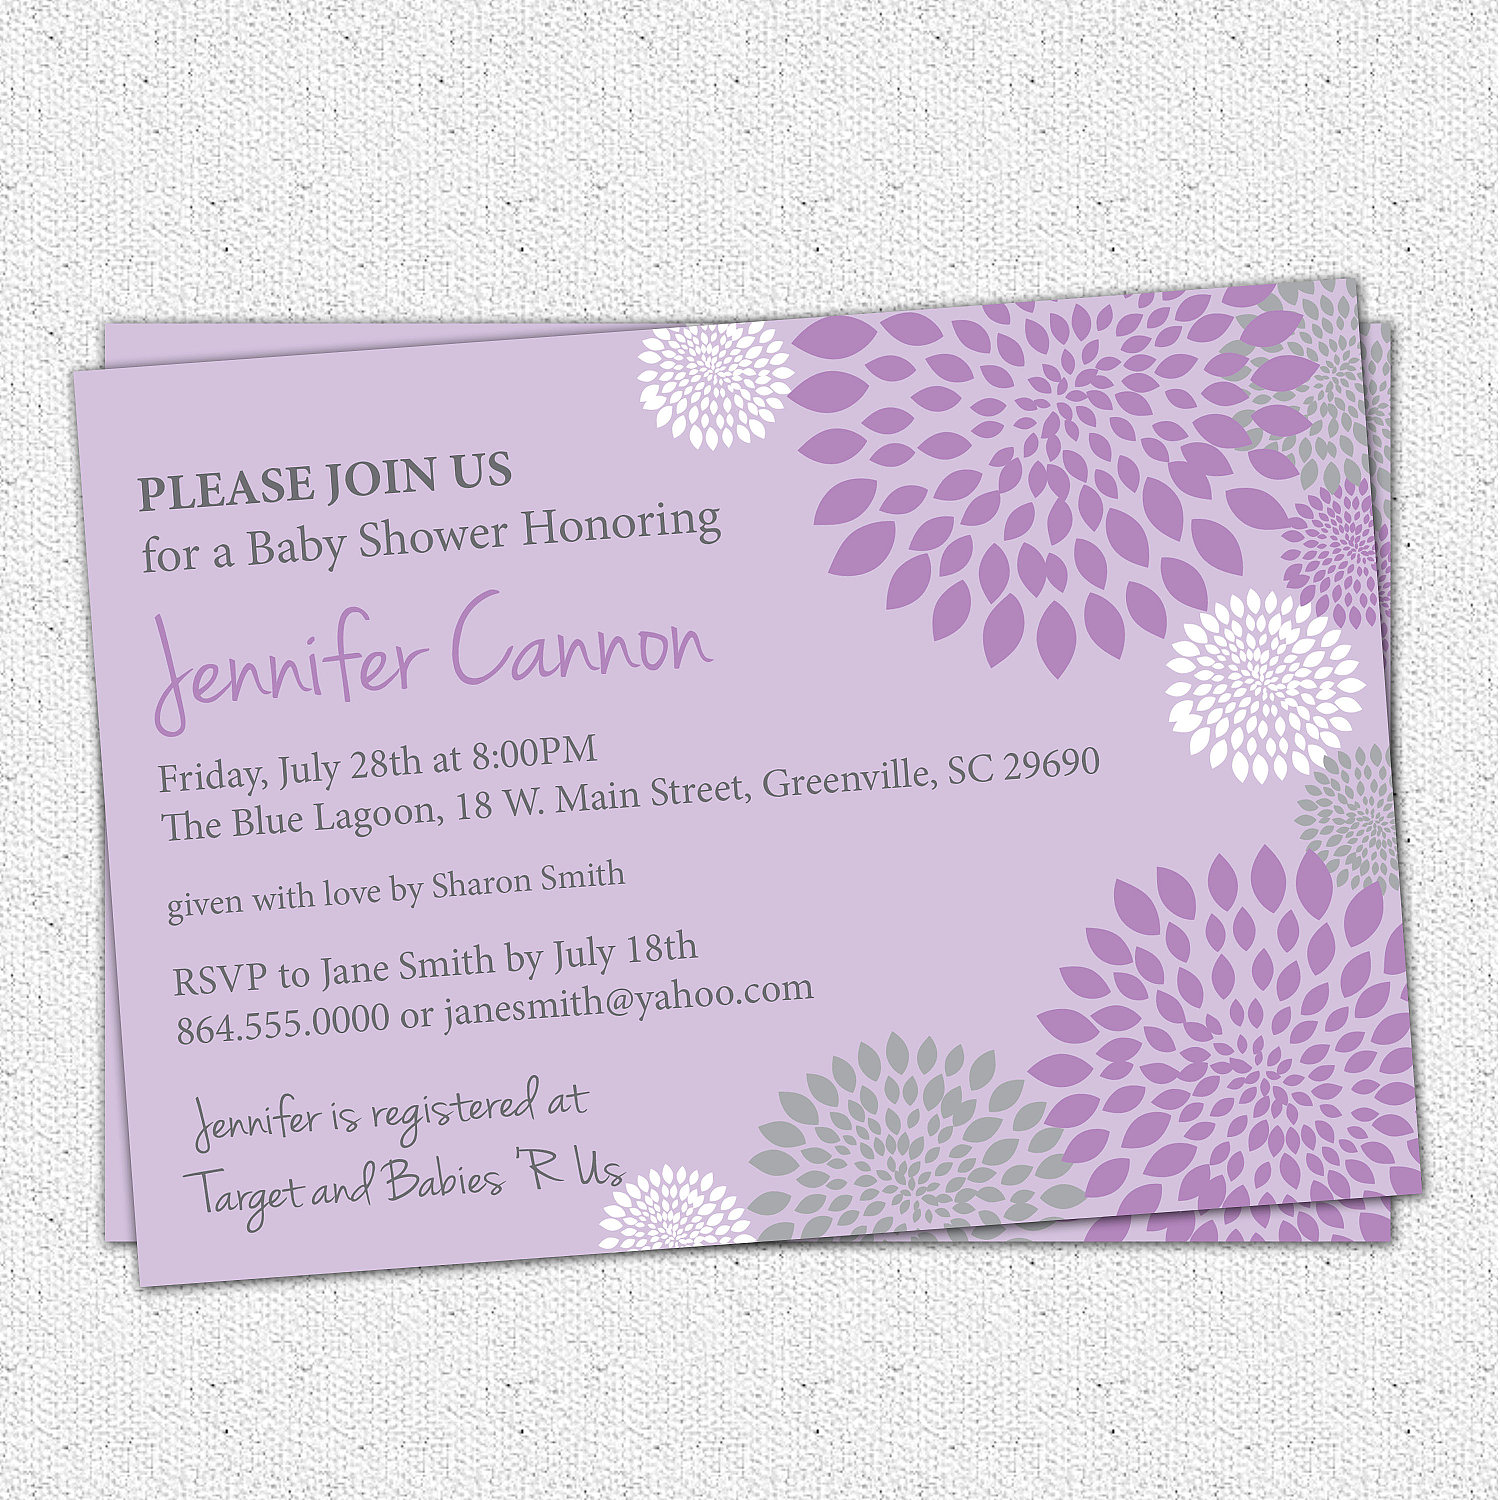 Baby shower invitations girl purple and lavender with charcoal grey baby shower invitations girl purple and lavender with charcoal grey gray accent floral modern filmwisefo